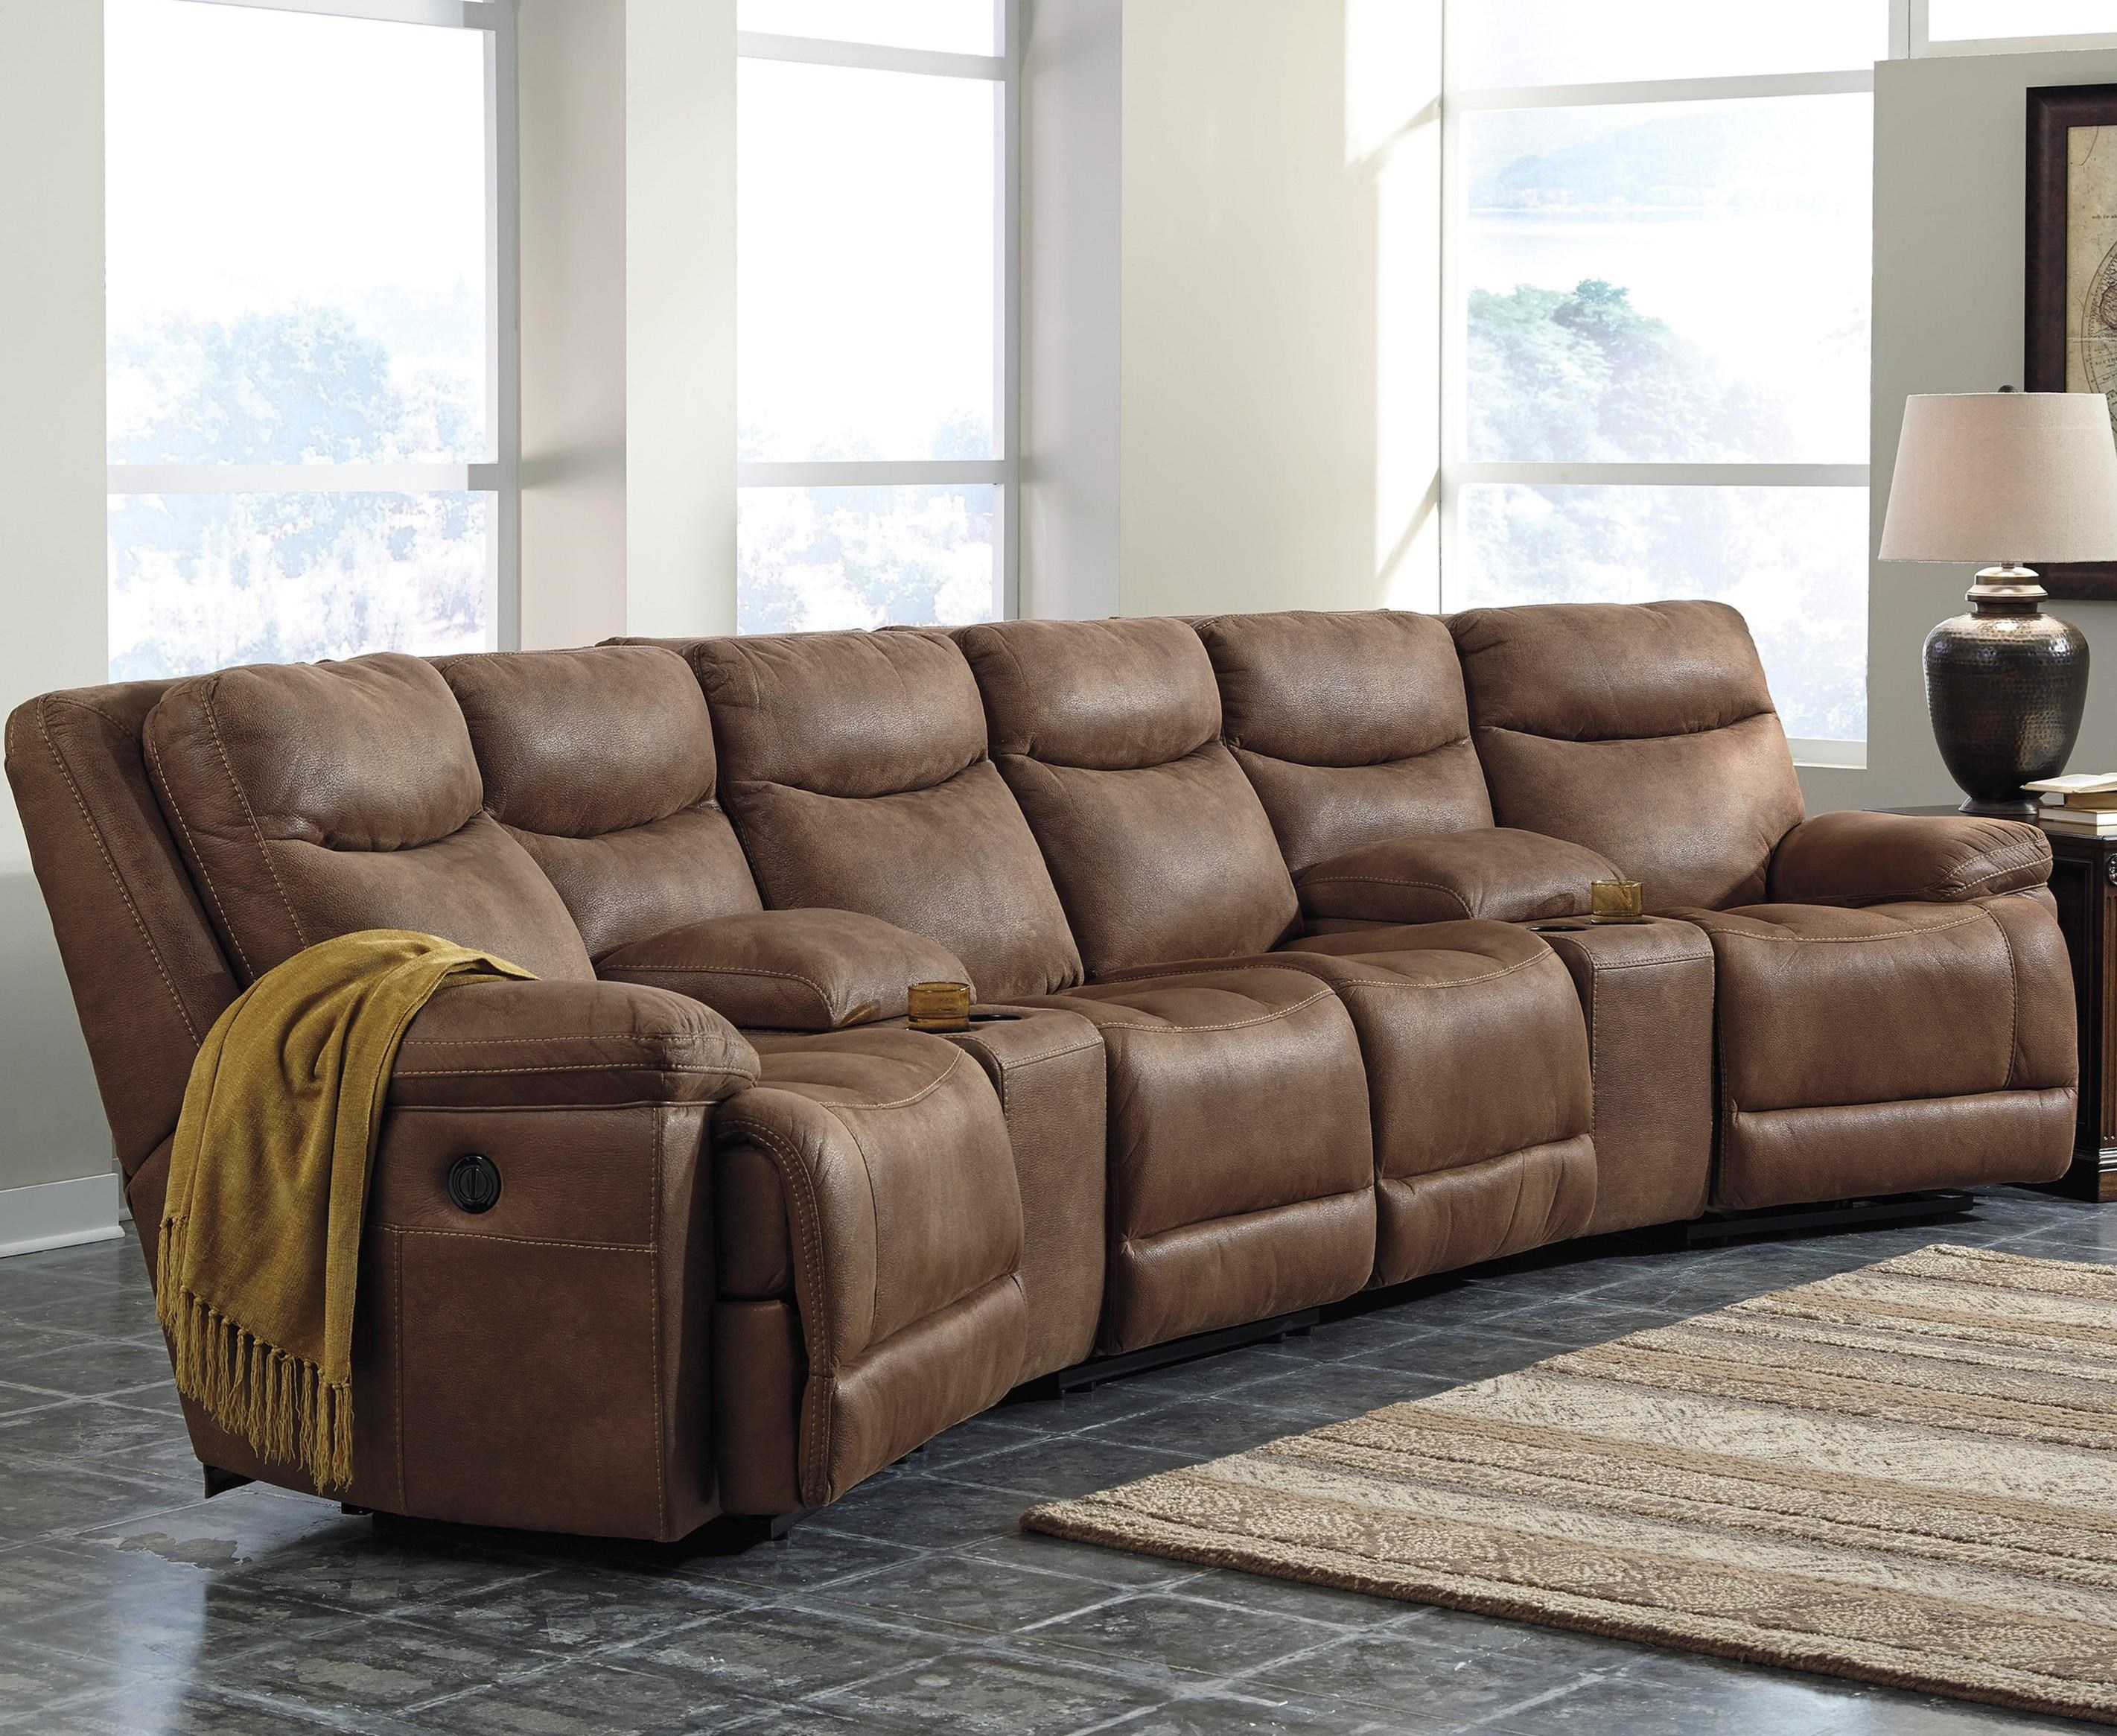 Signature Design by Ashley Valto Power Reclining Sectional w/ Angled Consoles - Item Number: 7940058+2x27+2x46+62